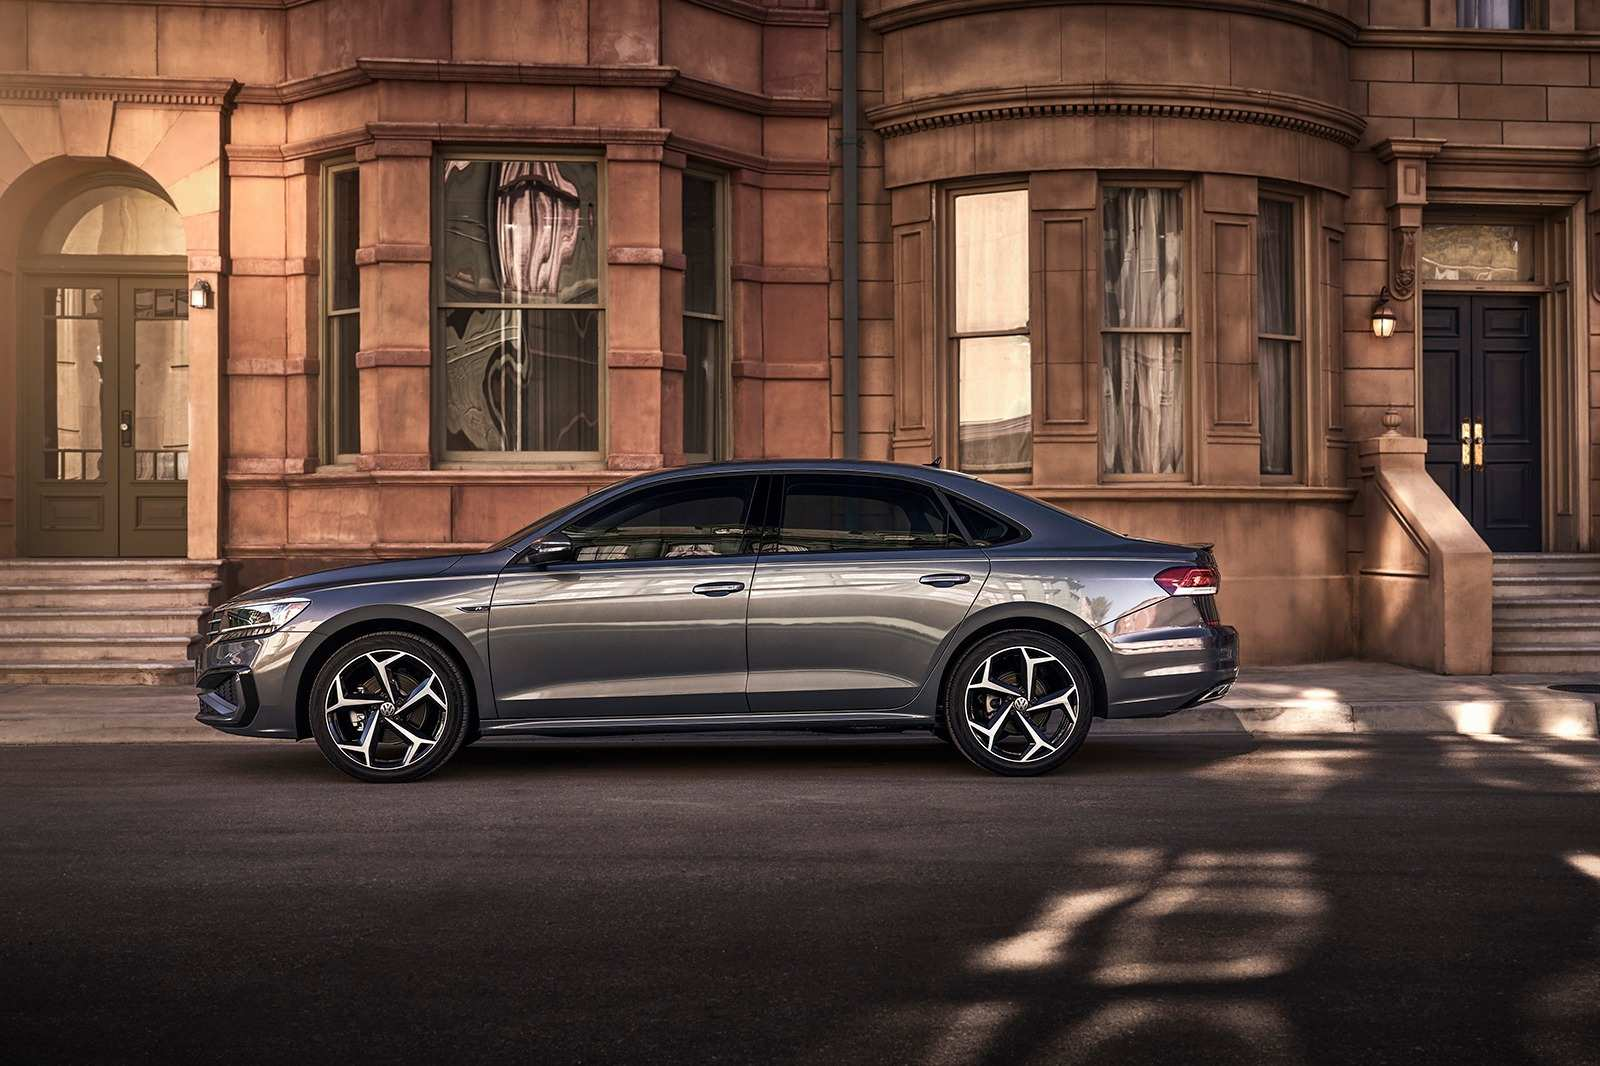 98 New 2020 Volkswagen Passat R Line Photos